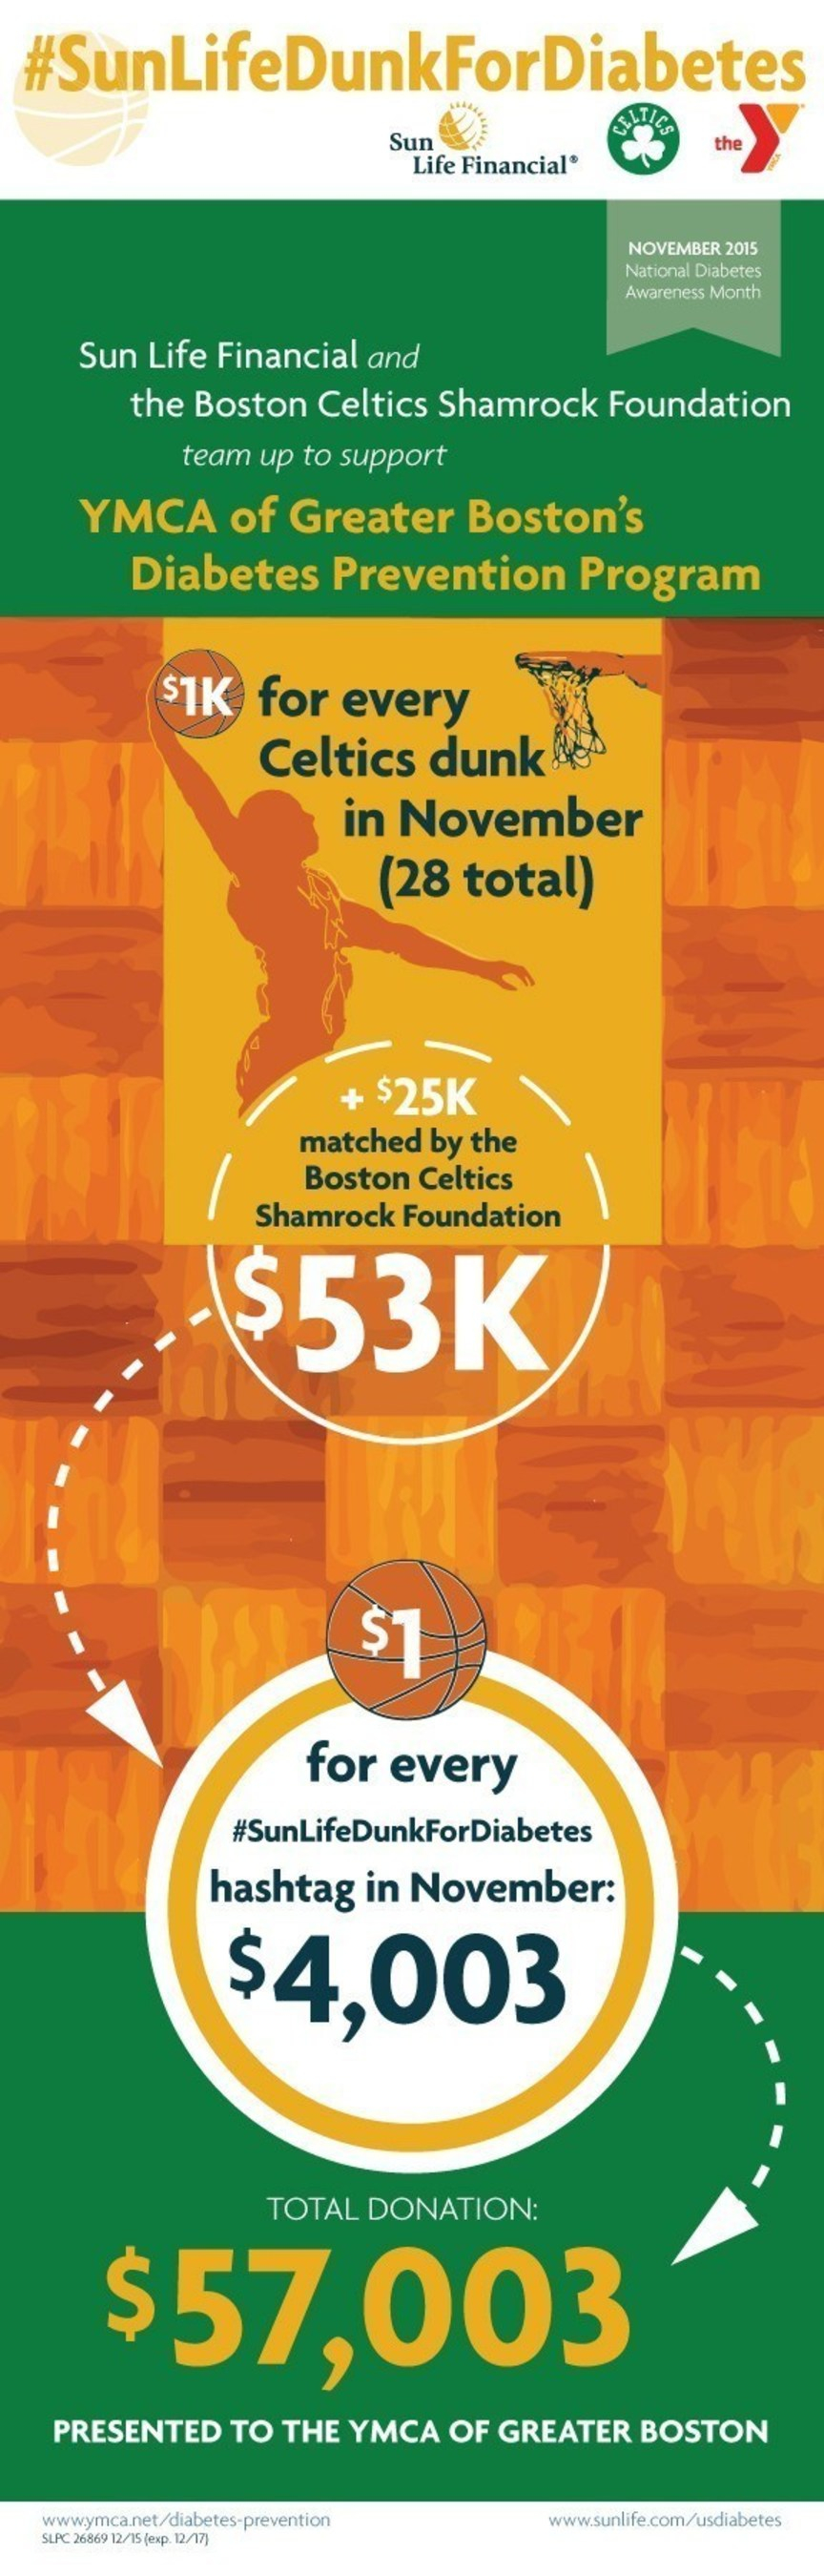 Donation results from #SunLifeDunkforDiabetes campaign, with Boston Celtics